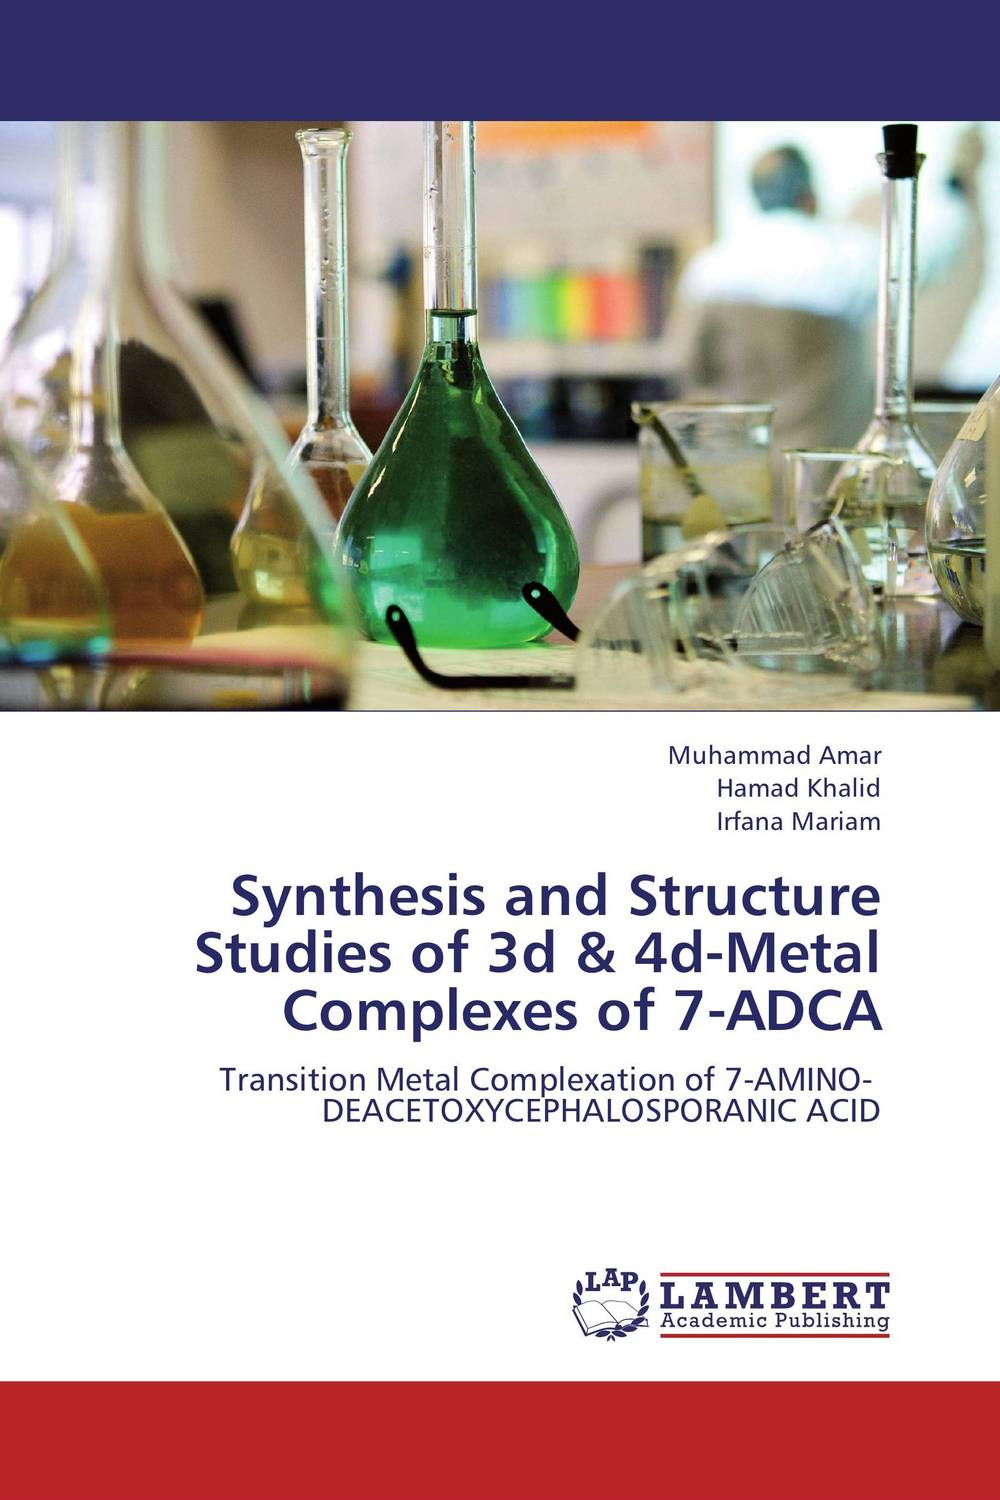 Synthesis and Structure Studies of 3d & 4d-Metal Complexes of 7-ADCA modified pnas synthesis and interaction studies with dna